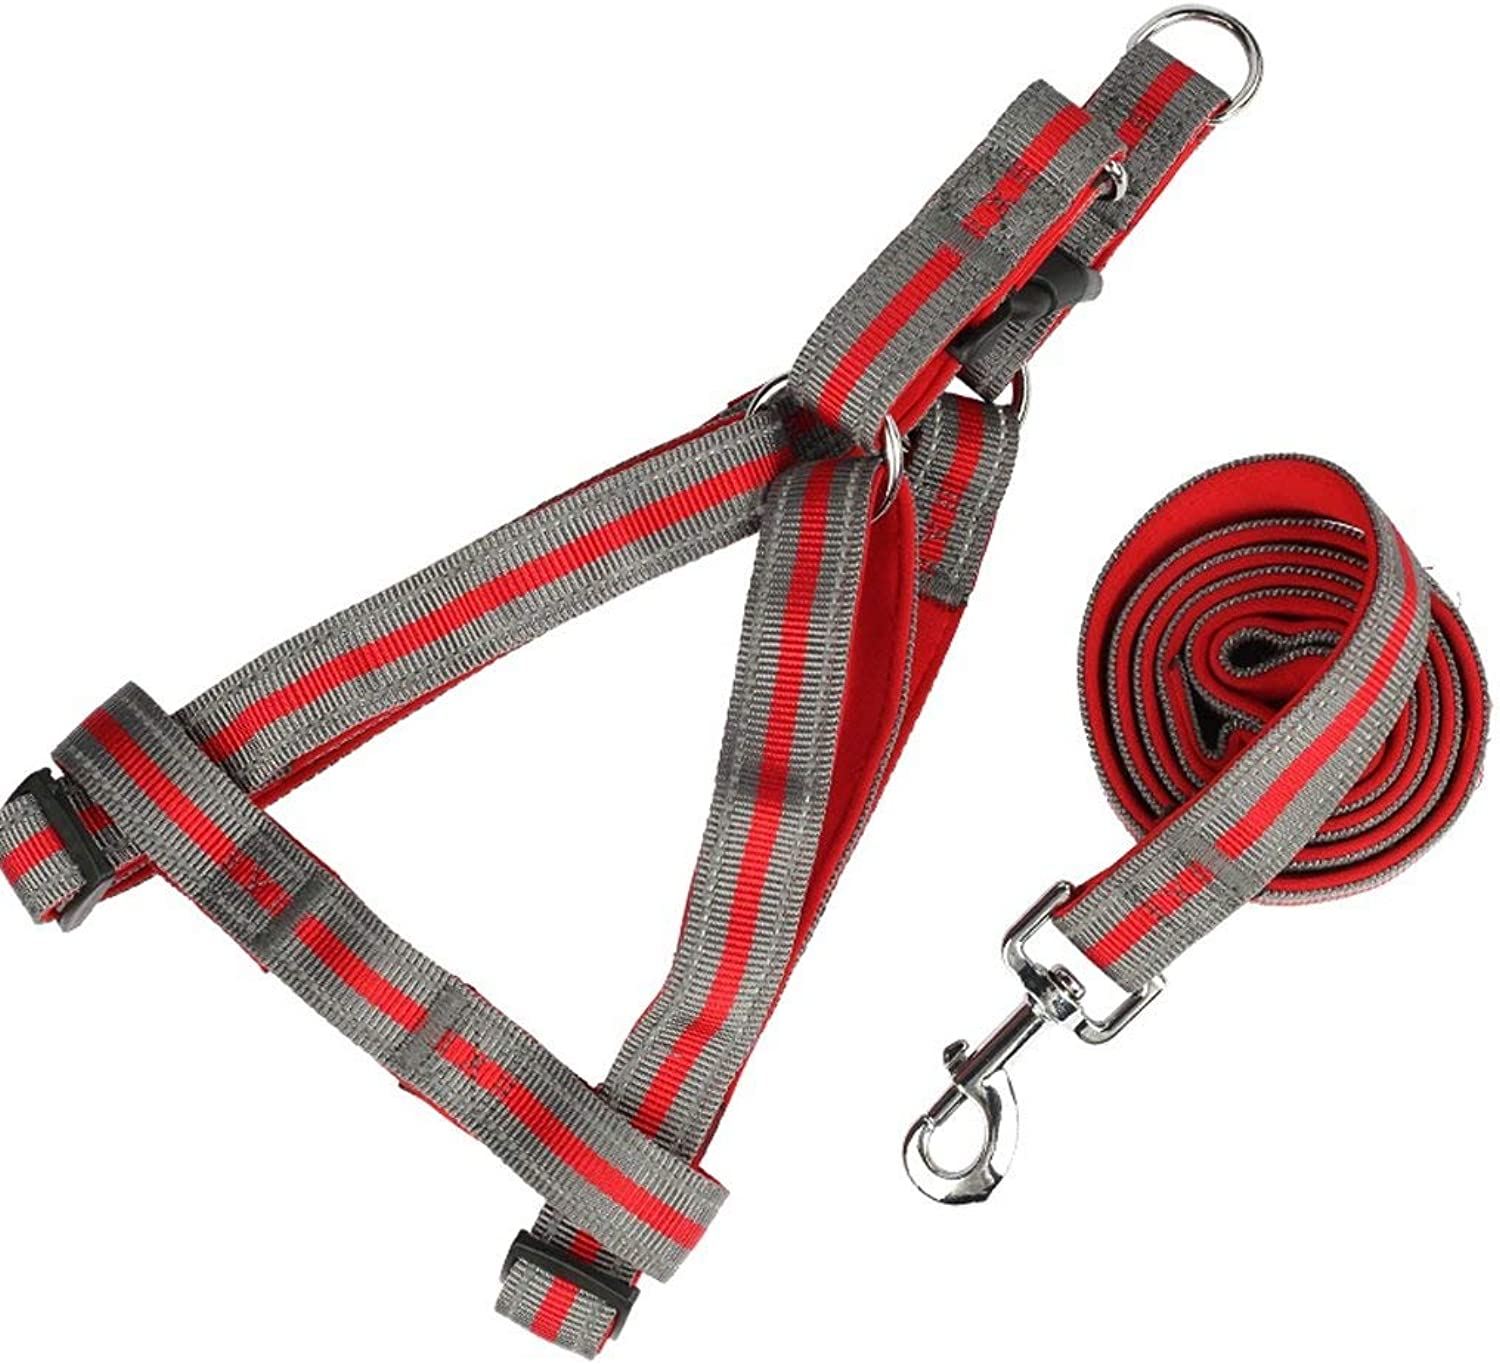 Pet Leash, Belt Harness, Dog Leash, Dog Leash, Small, Large Dog, Pet Supplies, Multicolor Optional (color   RED, Size   S)